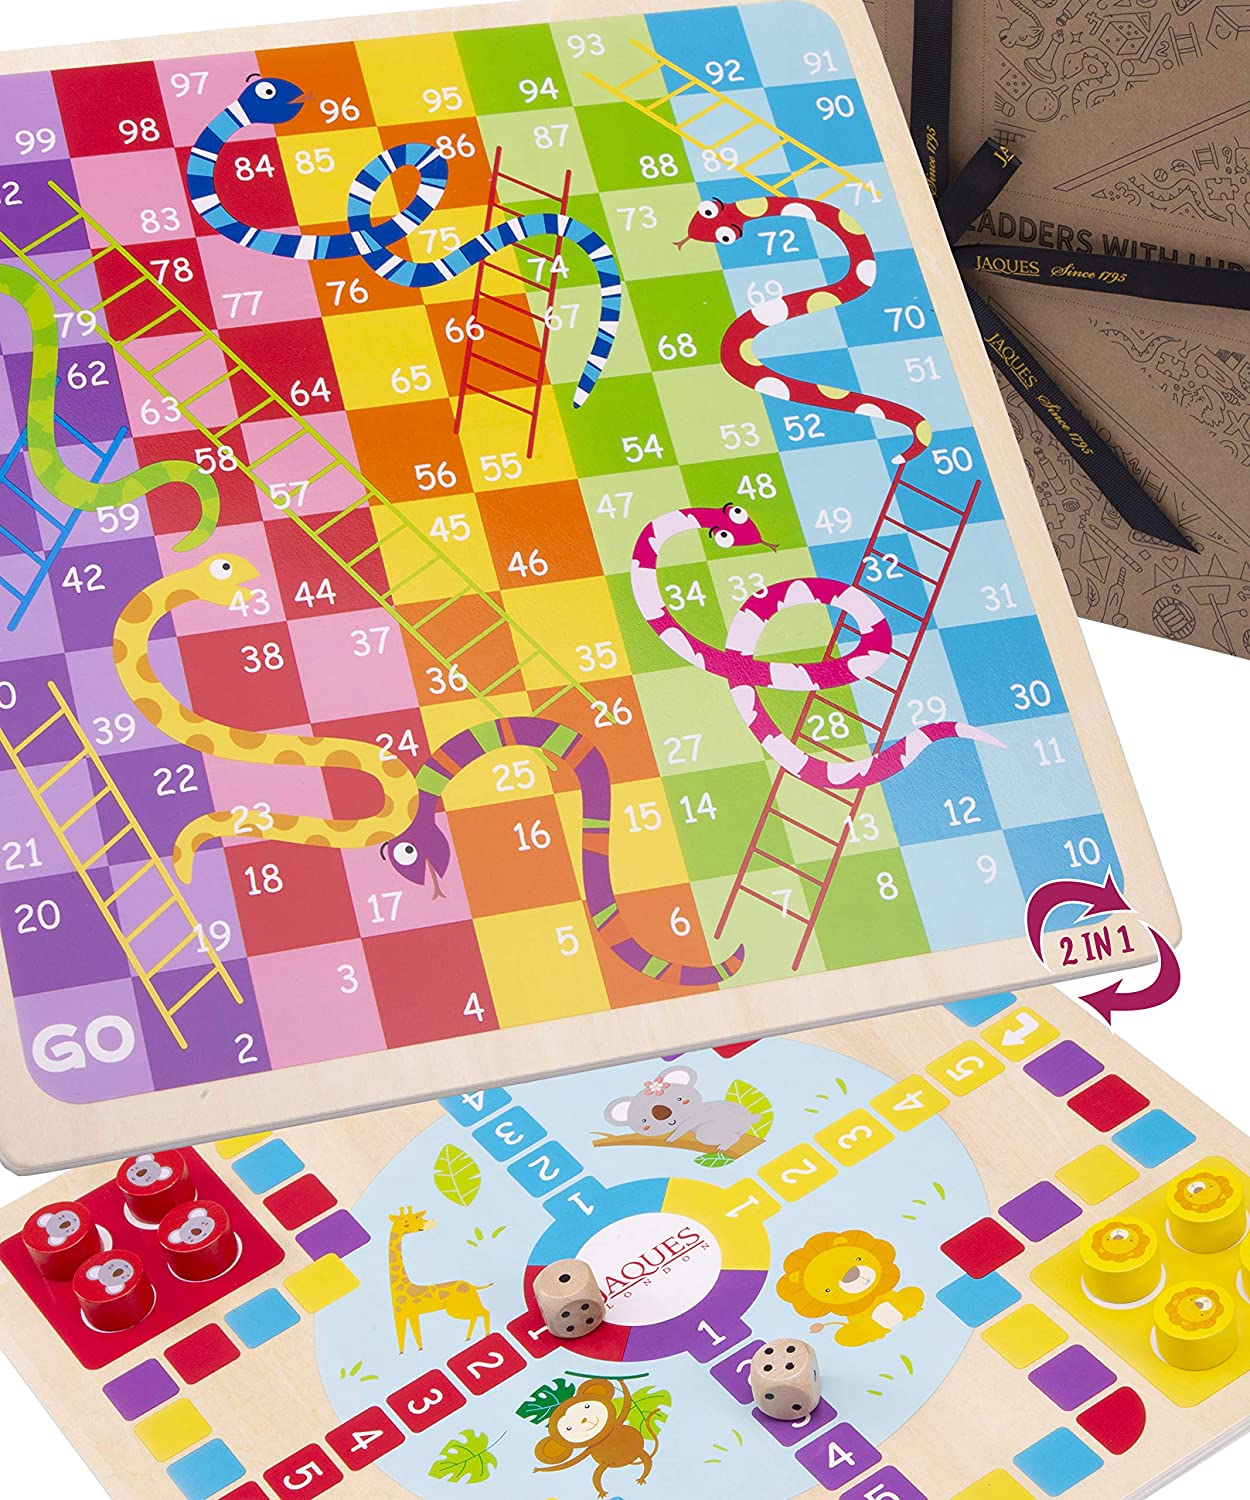 Jaques of London Snakes and Ladders Game with Ludo Deluxe Kids Board Games 2 in 1 and Premium Montessori Wooden Toys for 3 4 5 year olds Since 1795